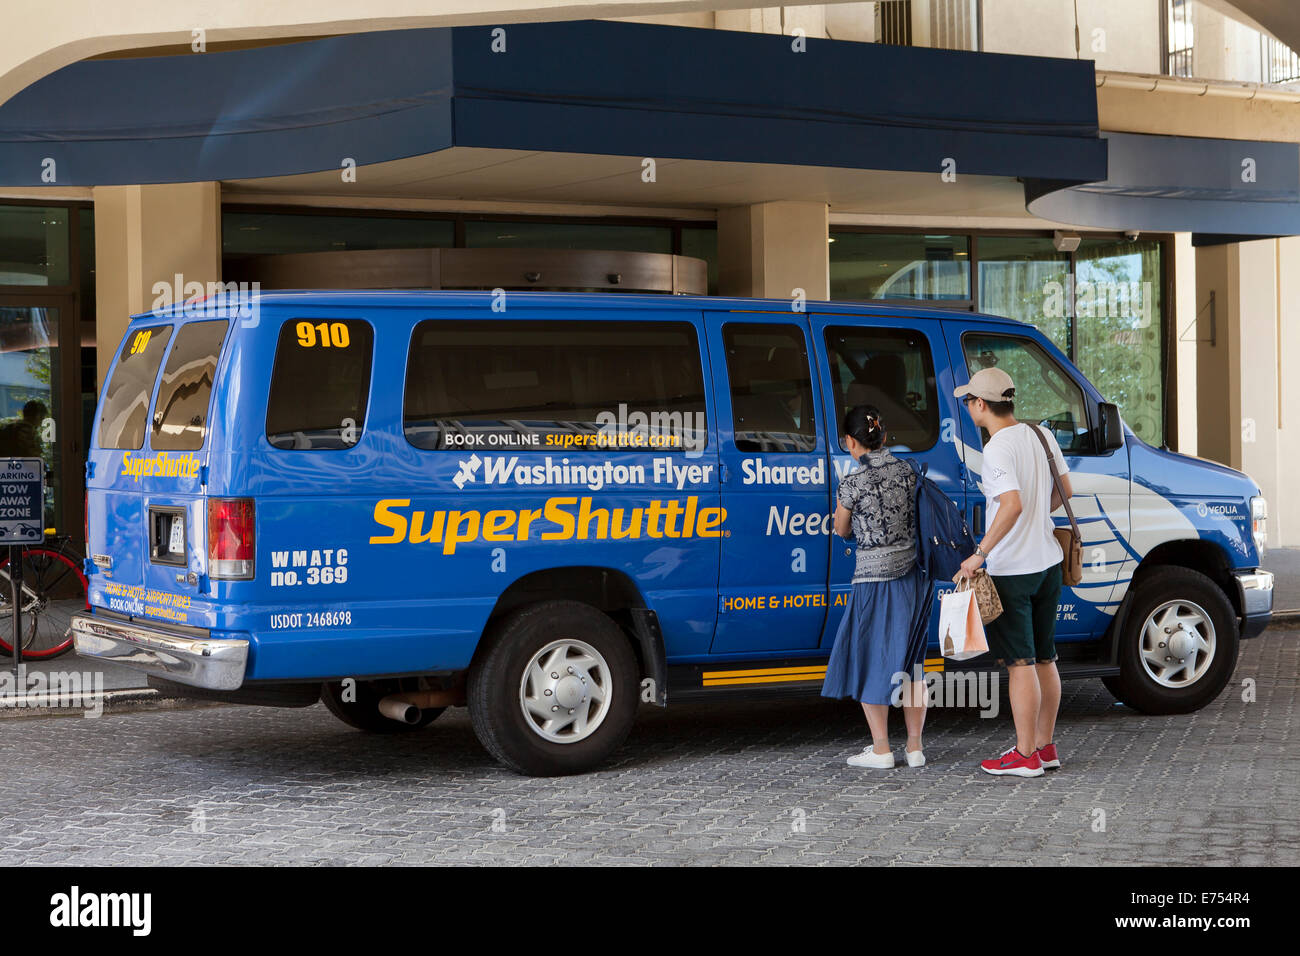 Washington D.C. Airport Shuttle Service Shuttle services are also available to and from Washington D.C. Dulles Airport. You can schedule your shuttle service with a reliable airport shuttle service company that also gives services to most domestic and international airports throughout the state.